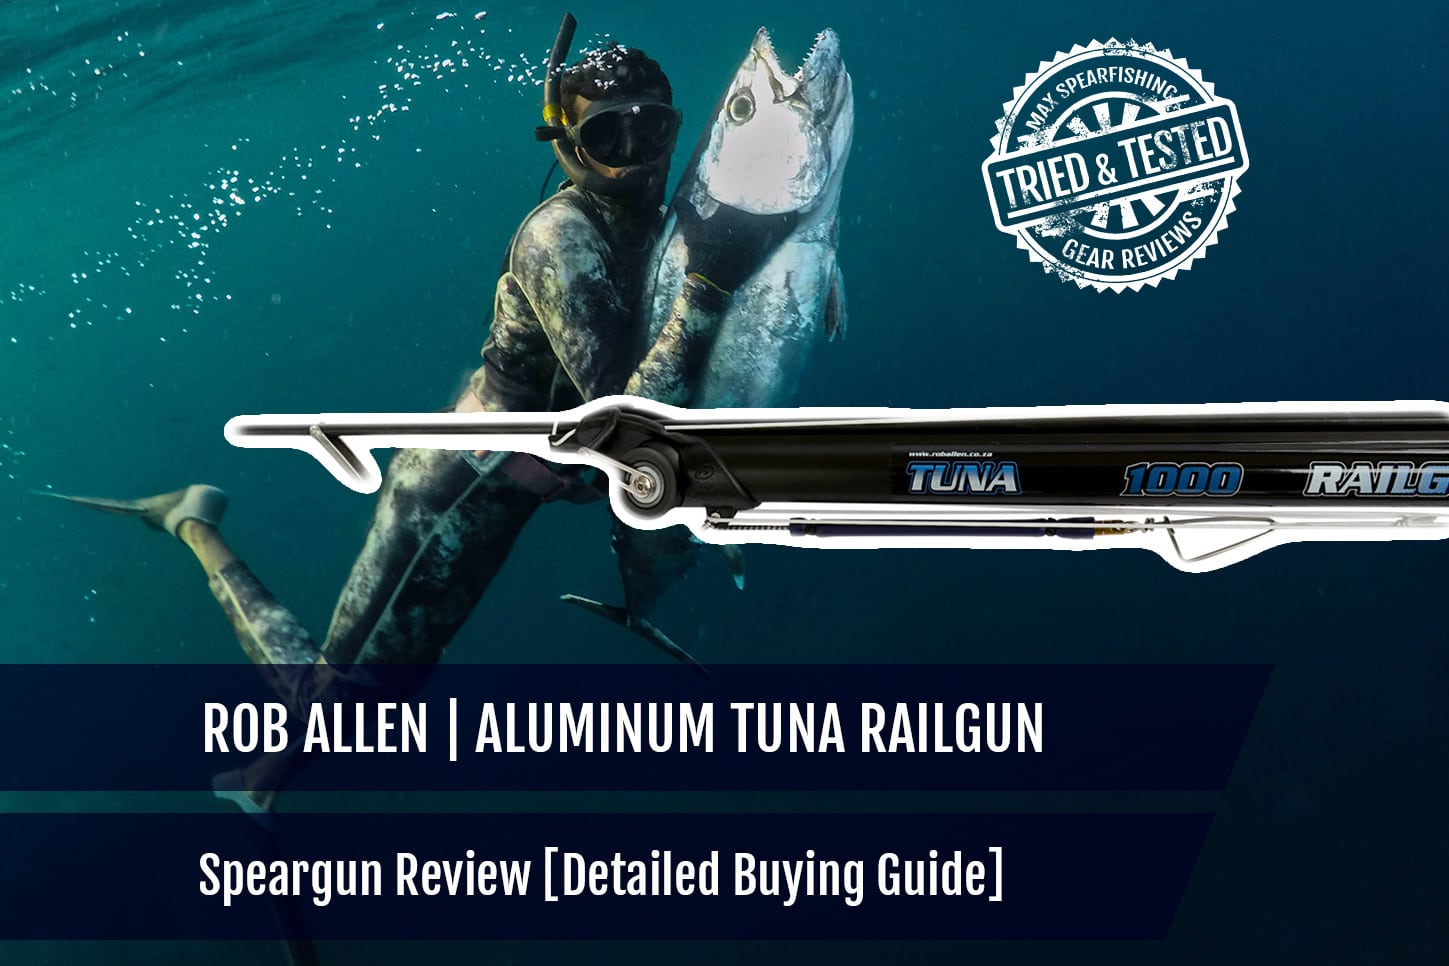 Rob Allen Aluminum Tuna Railgun Speargun Review